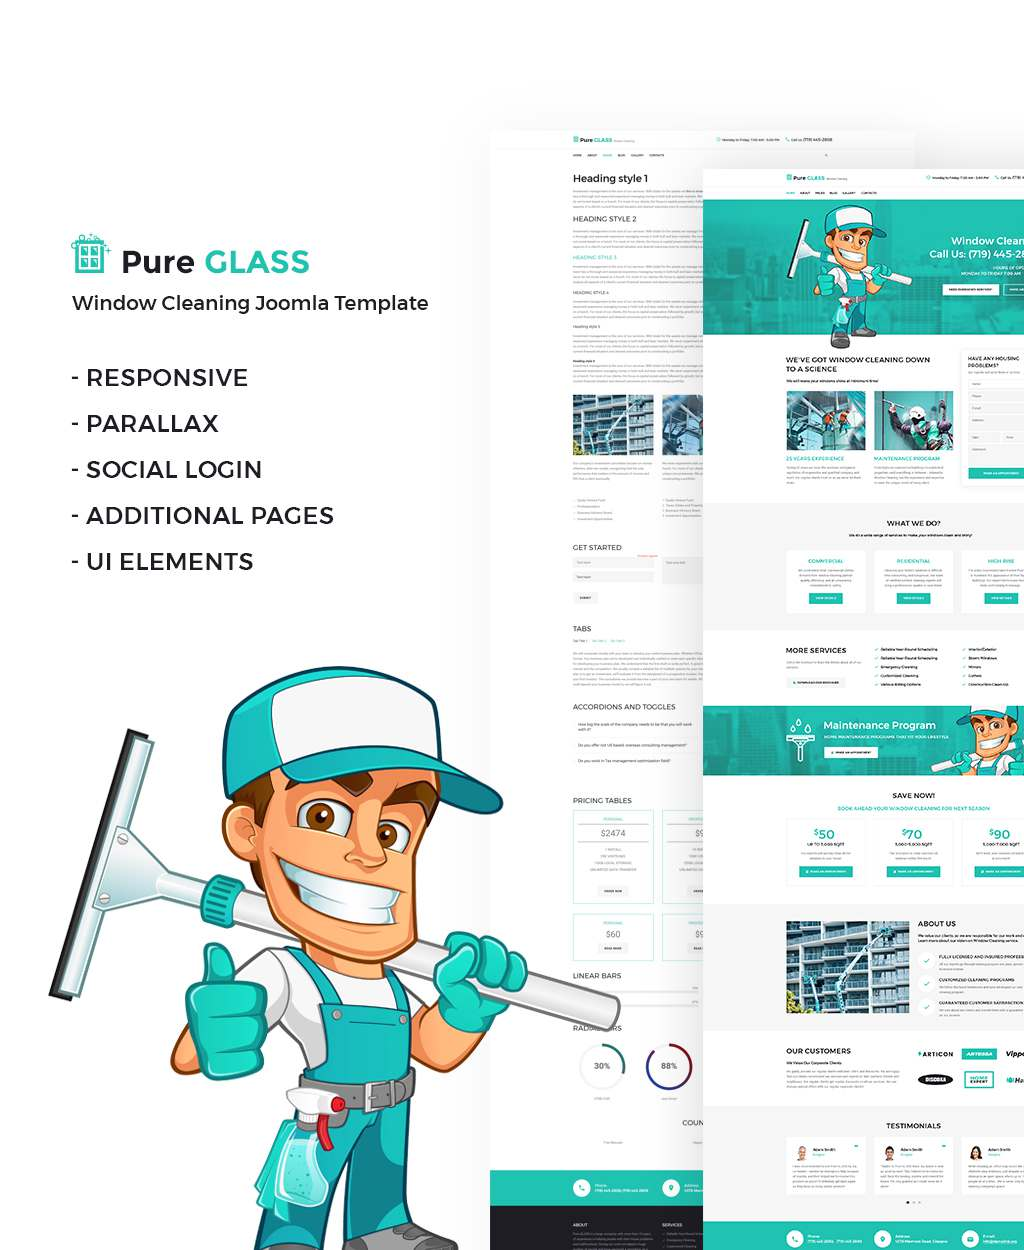 Pure Glass – Window Cleaning Services Joomla Template TMT Truman Jonah